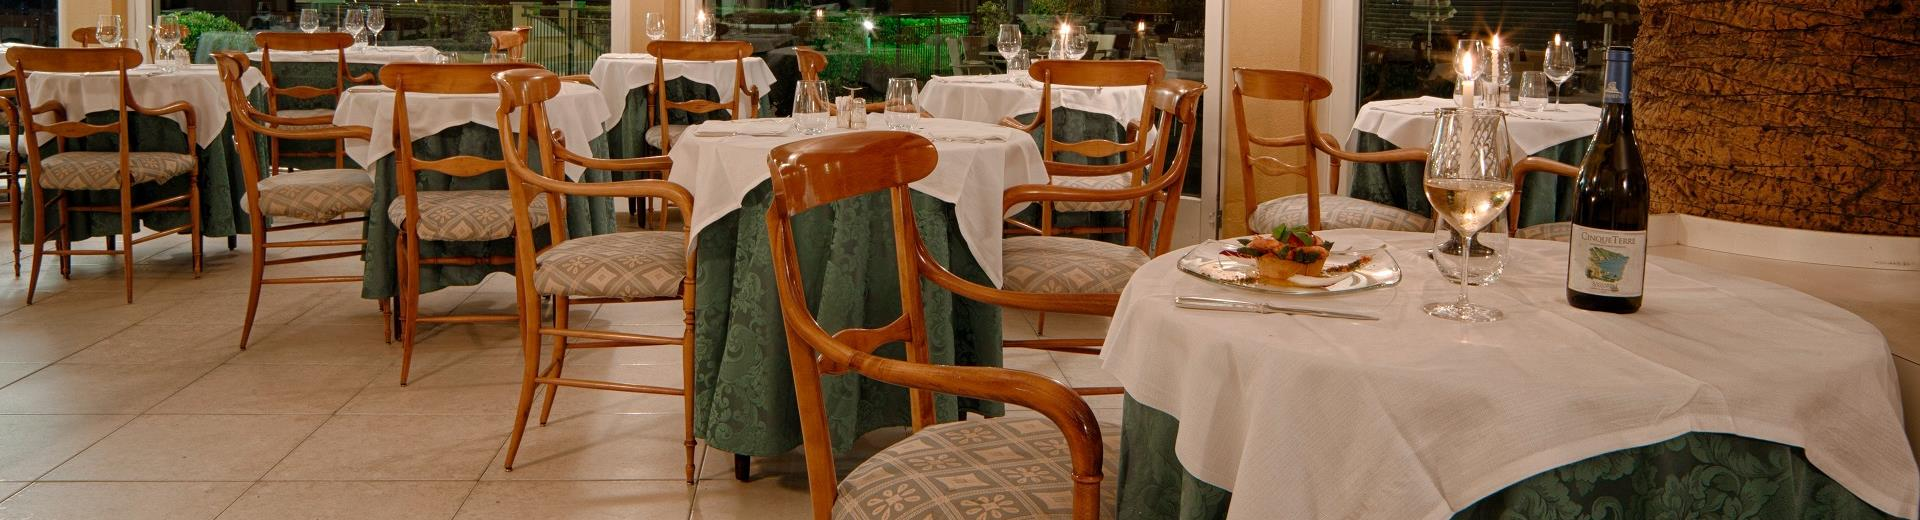 The best Western Hotel Regina Elena offers an elegant restaurant for every event